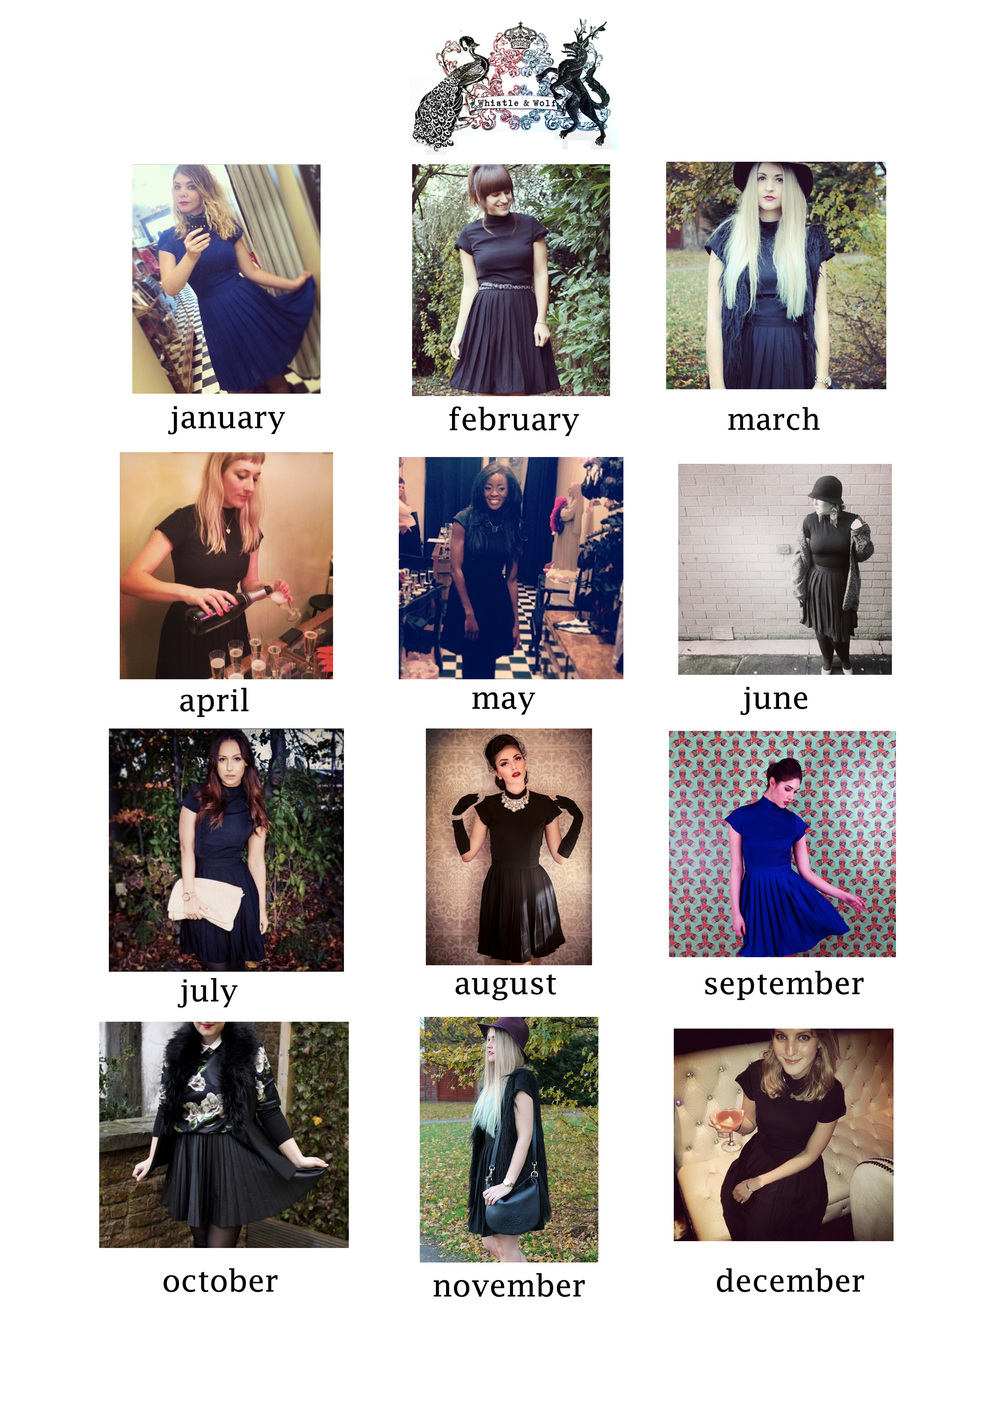 calendar of pleated dresses.jpg